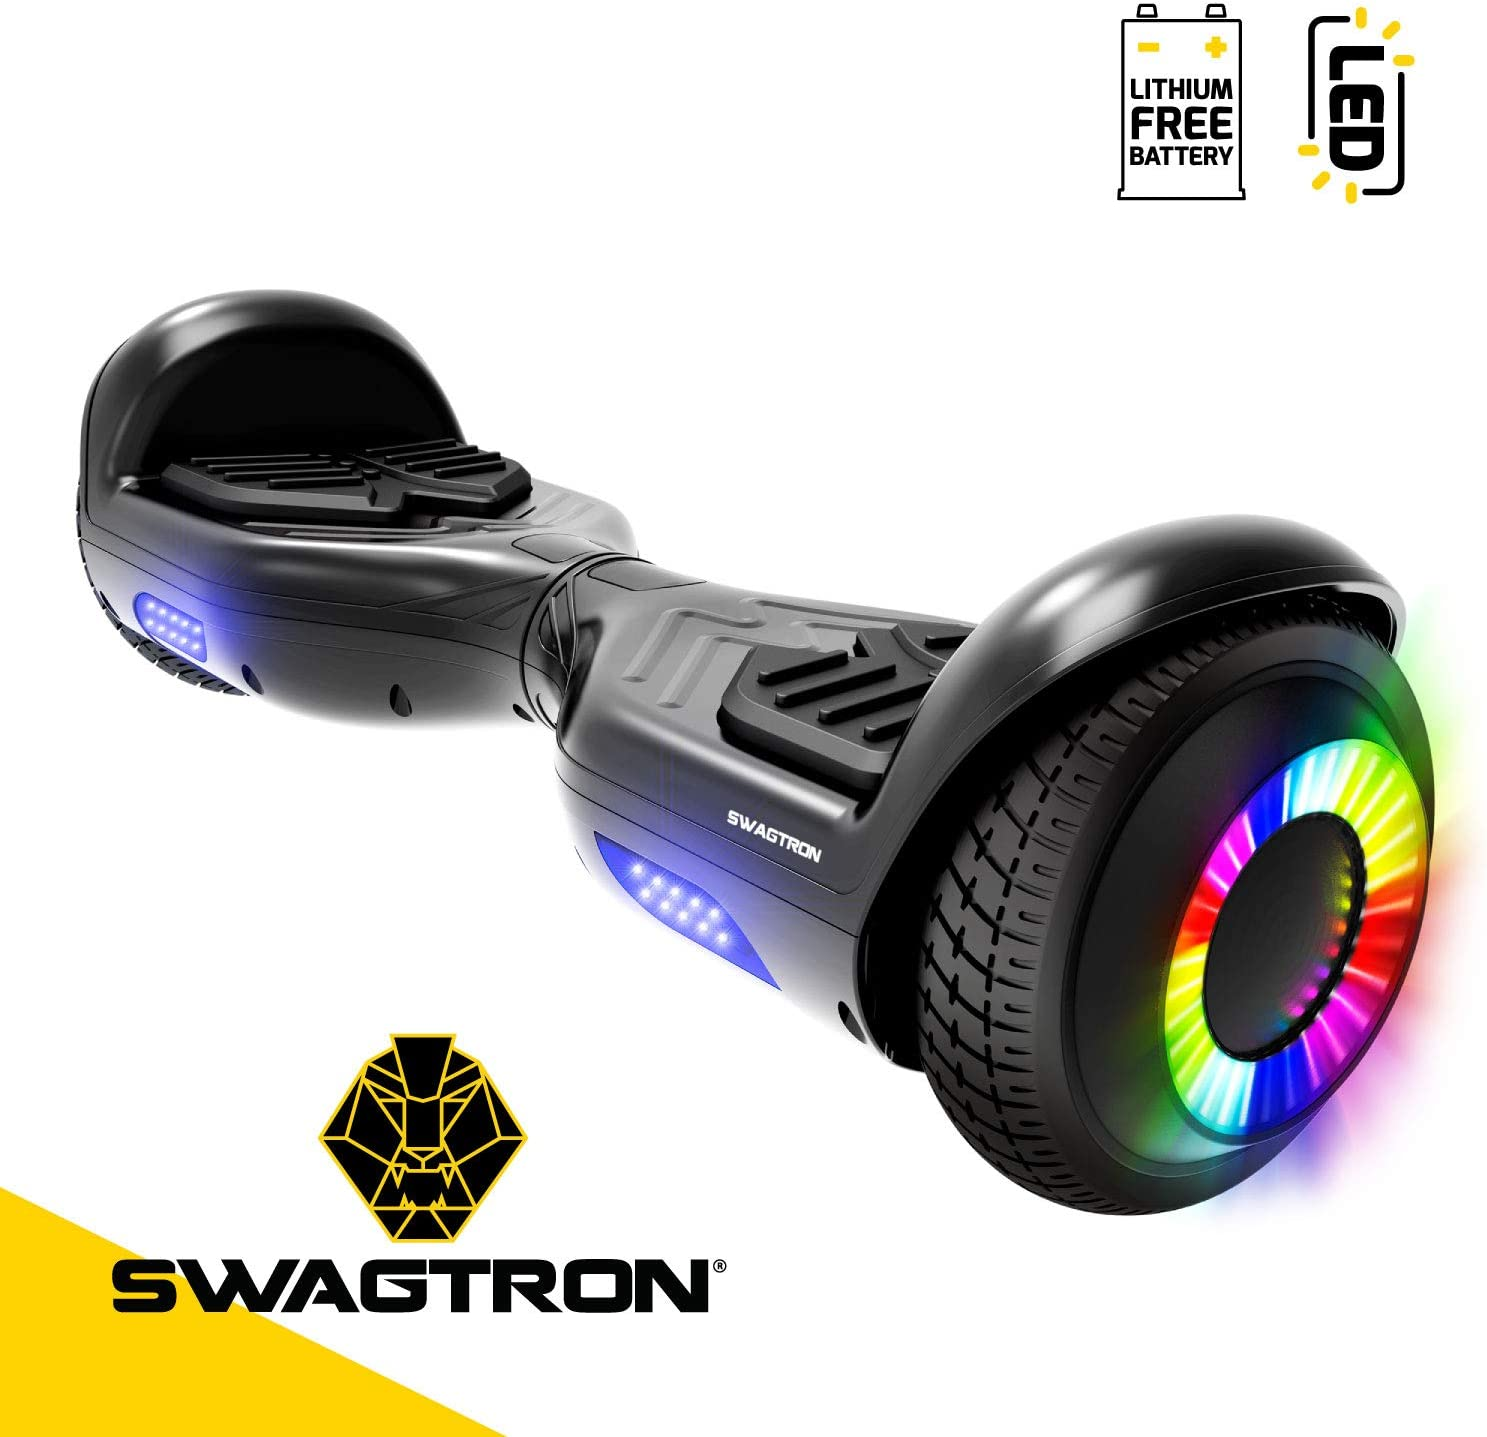 Swagboard Twist Lithium-Free Kids Hoverboard LED Black / US